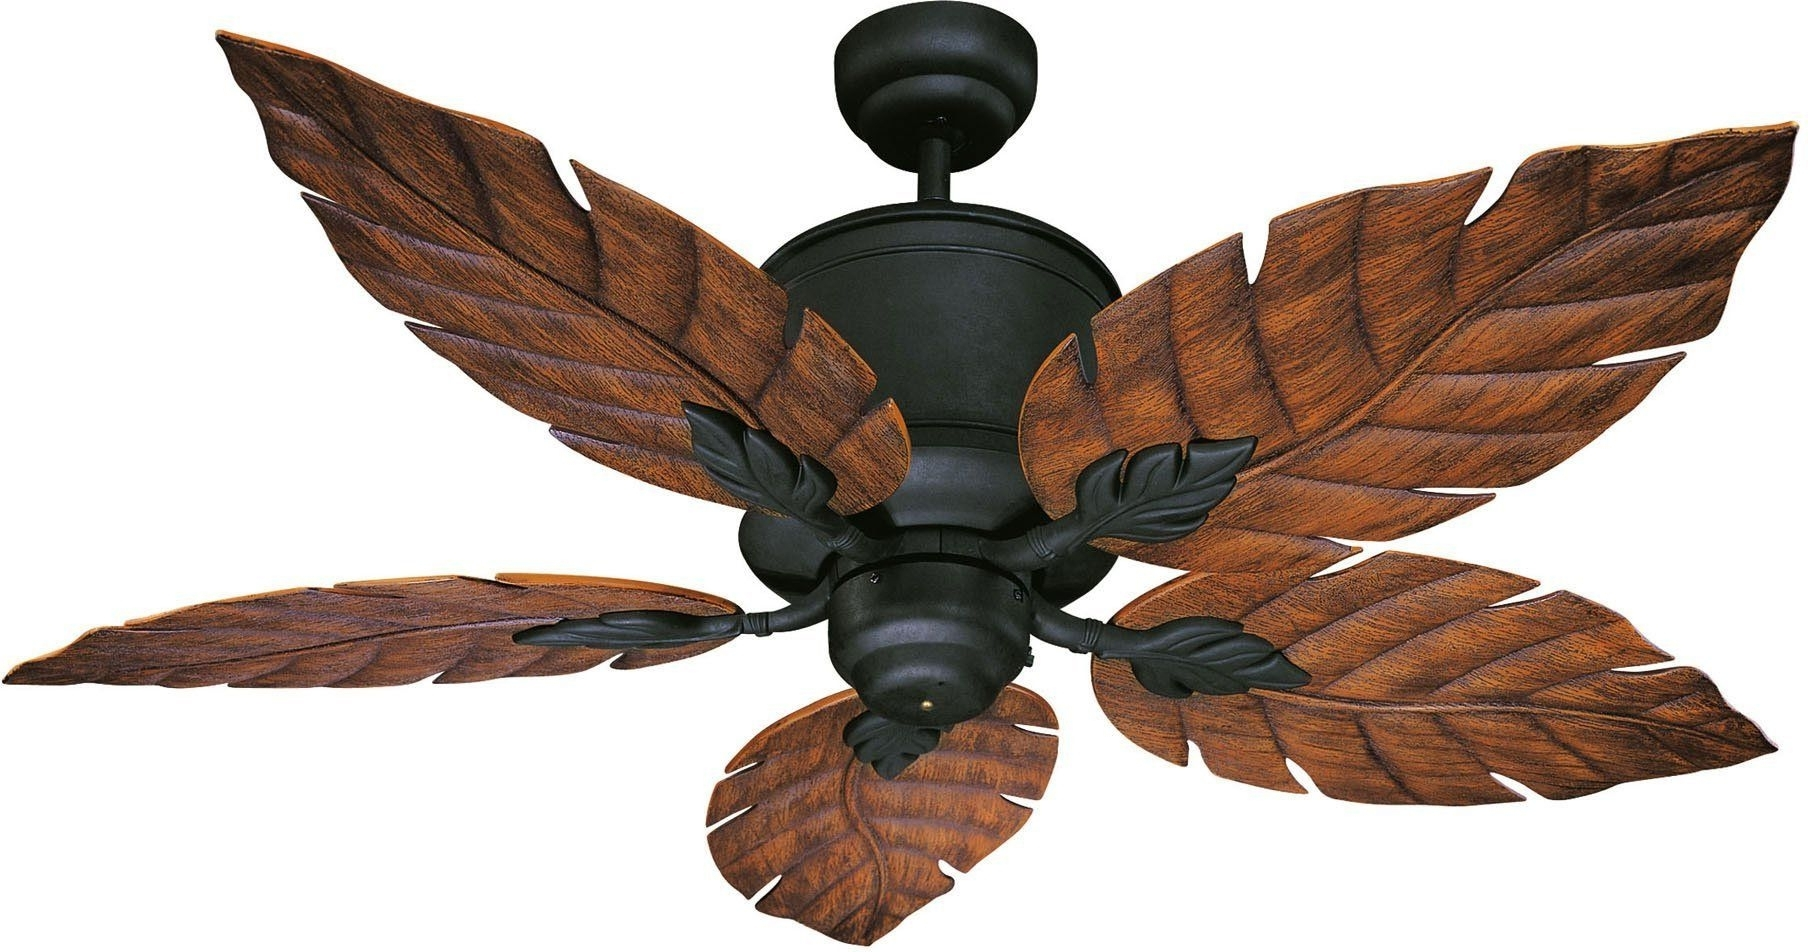 "Horseshoe Black Portico Portico 52"" Five Blade Outdoor Ceiling Fan Inside Most Up To Date Leaf Blades Outdoor Ceiling Fans (View 7 of 20)"